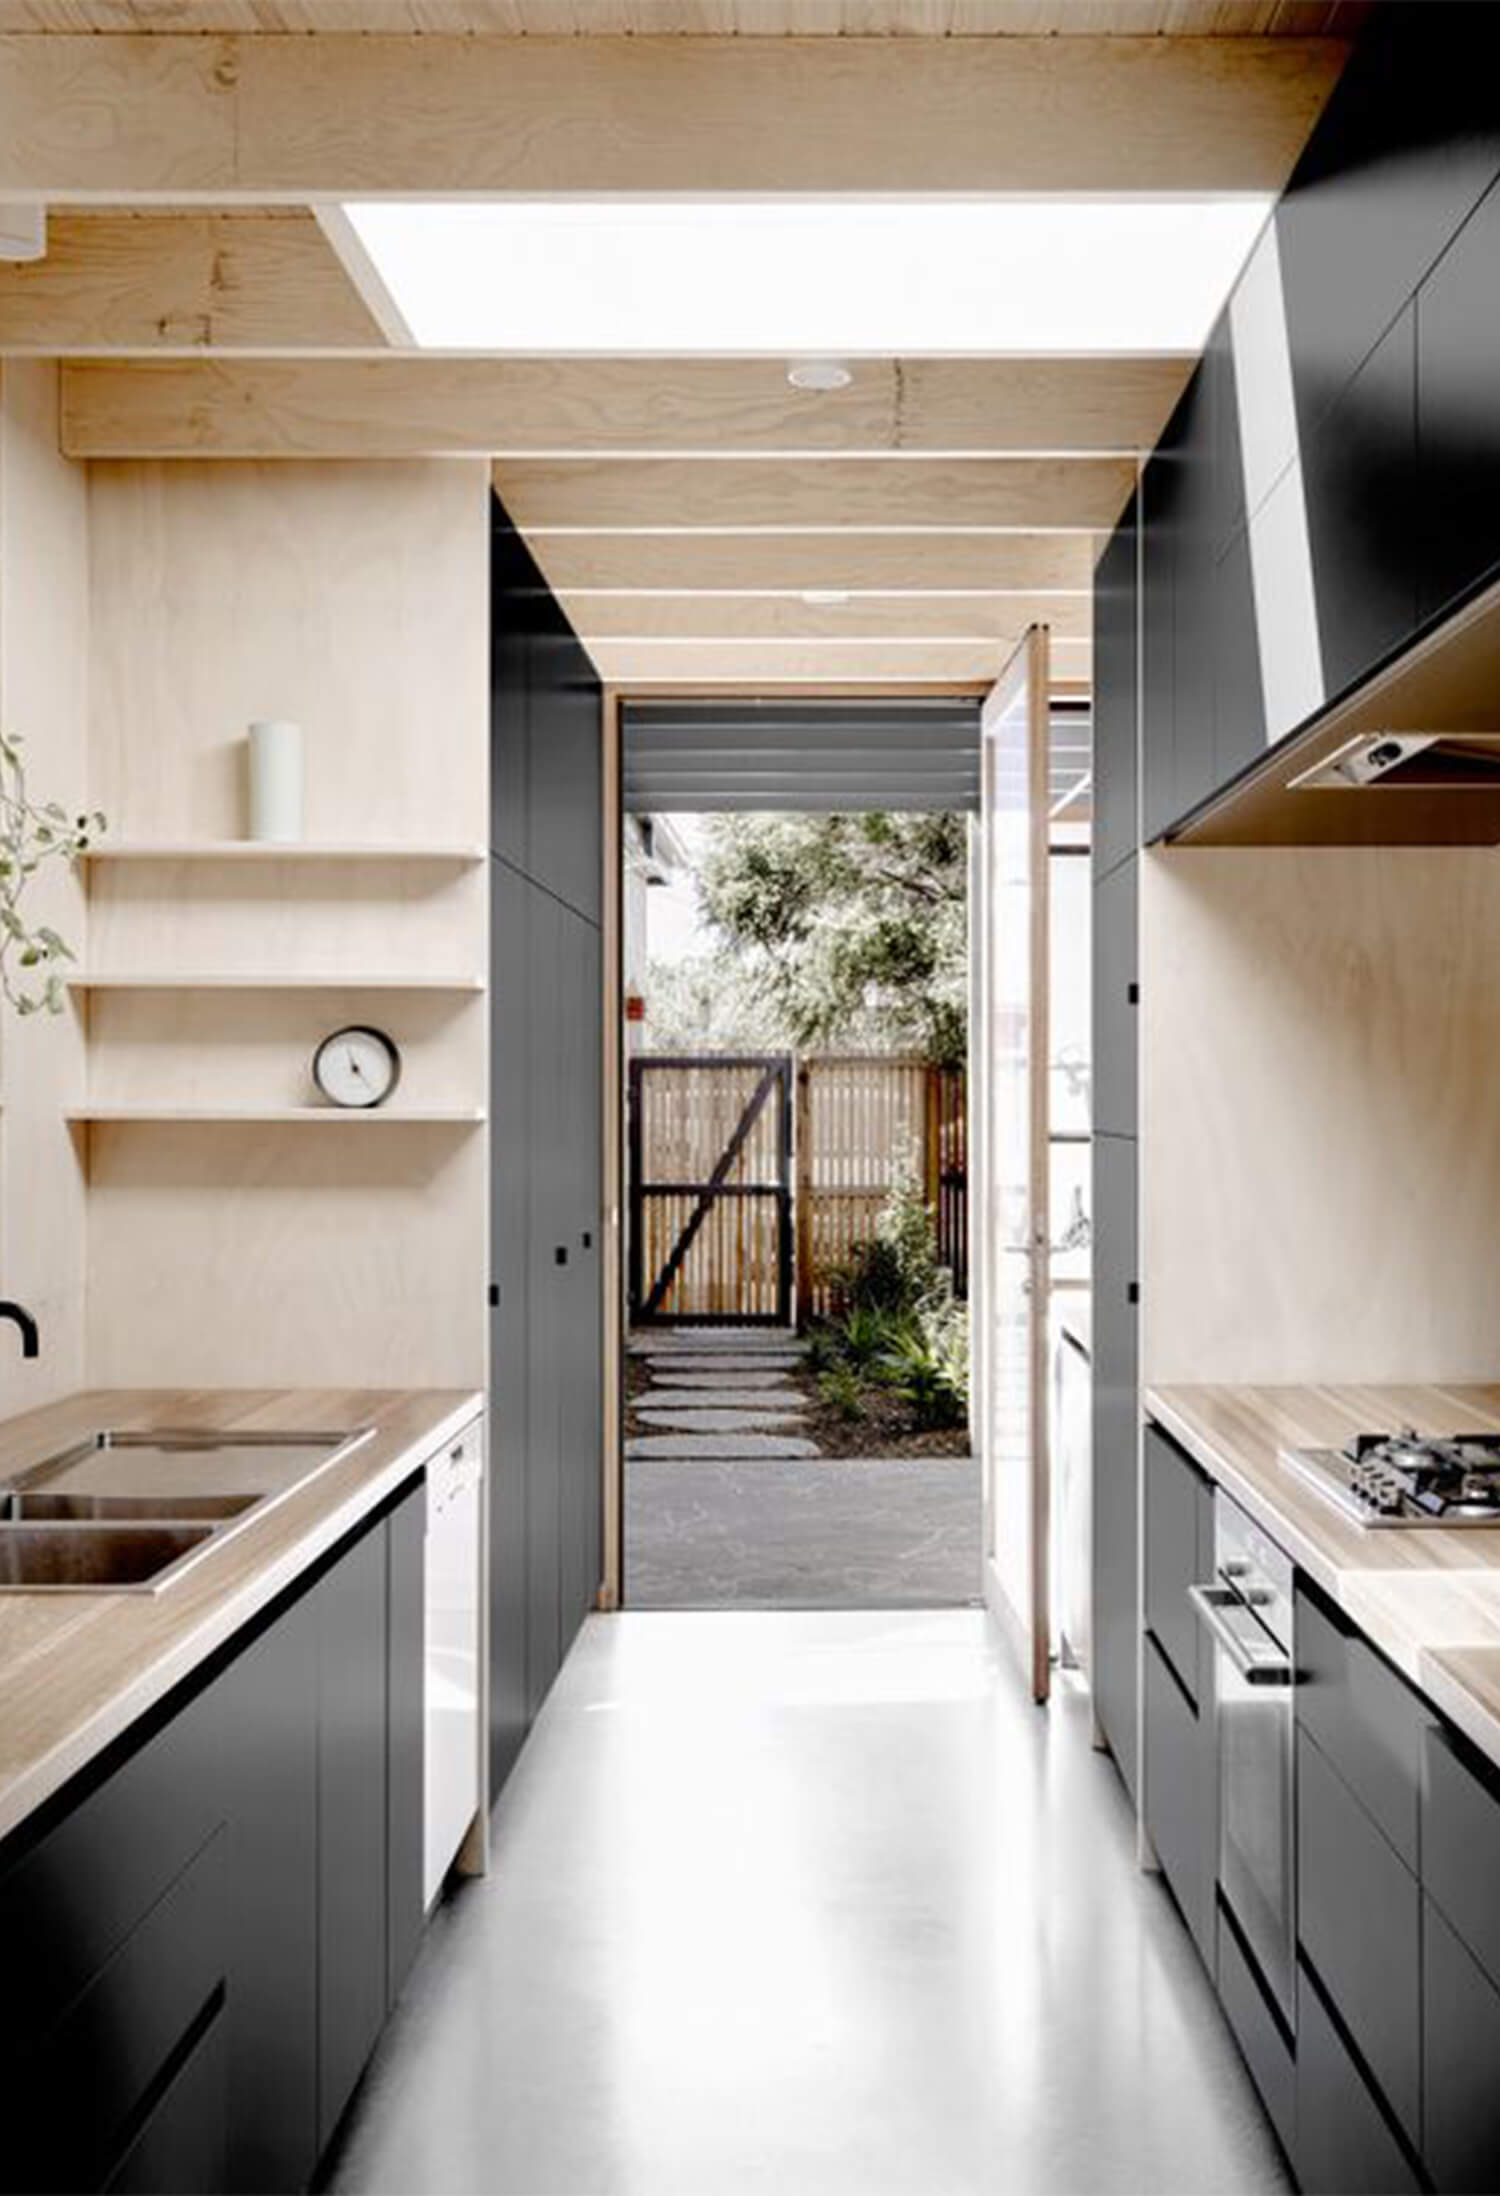 est living timber kitchens lees house rob kennon architects